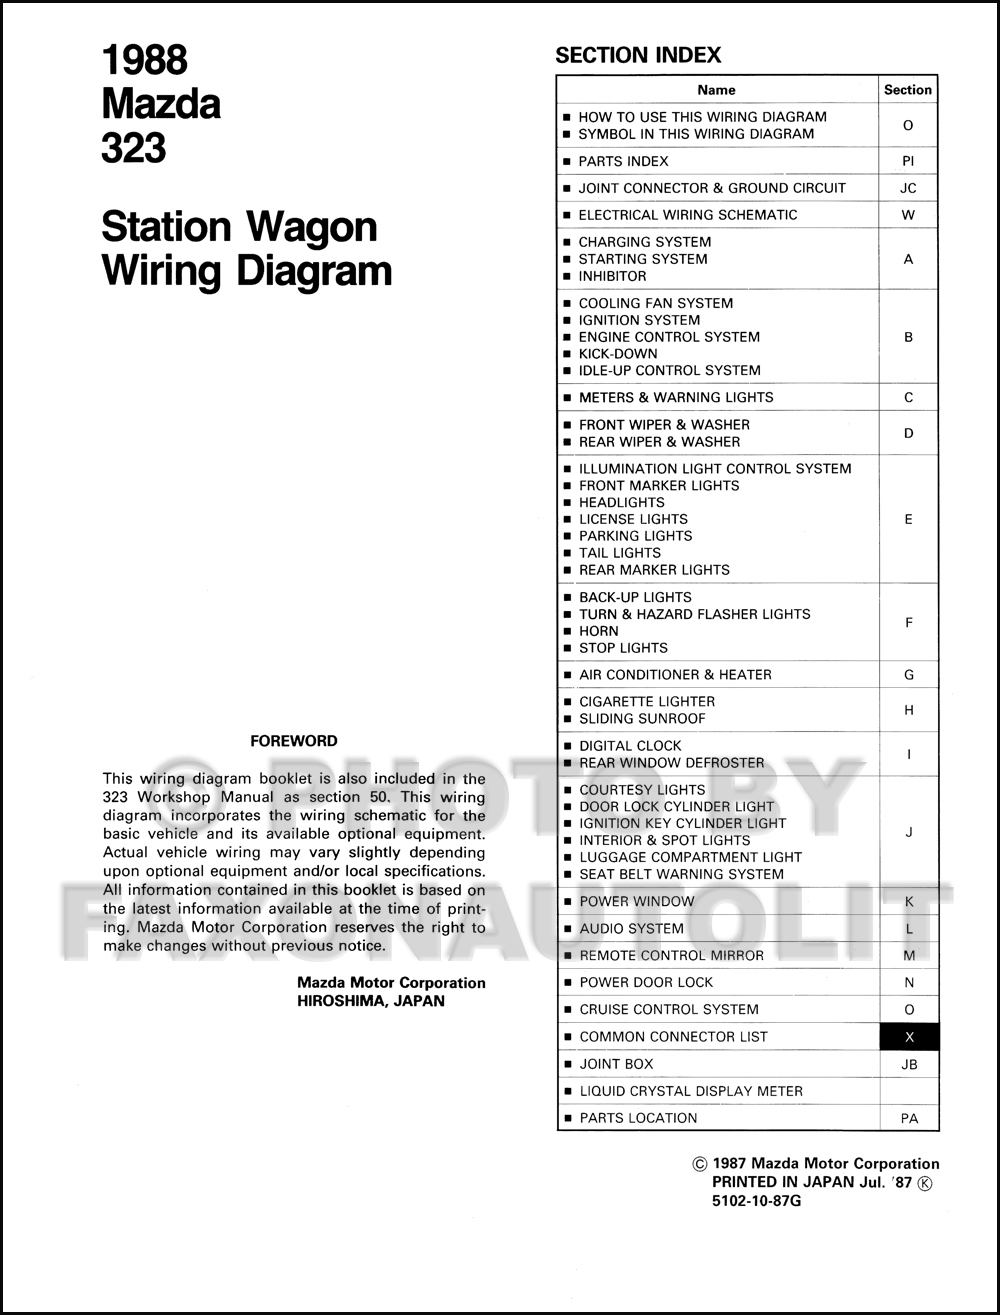 1988 mazda 323 station wagon wiring diagram manual original. Black Bedroom Furniture Sets. Home Design Ideas